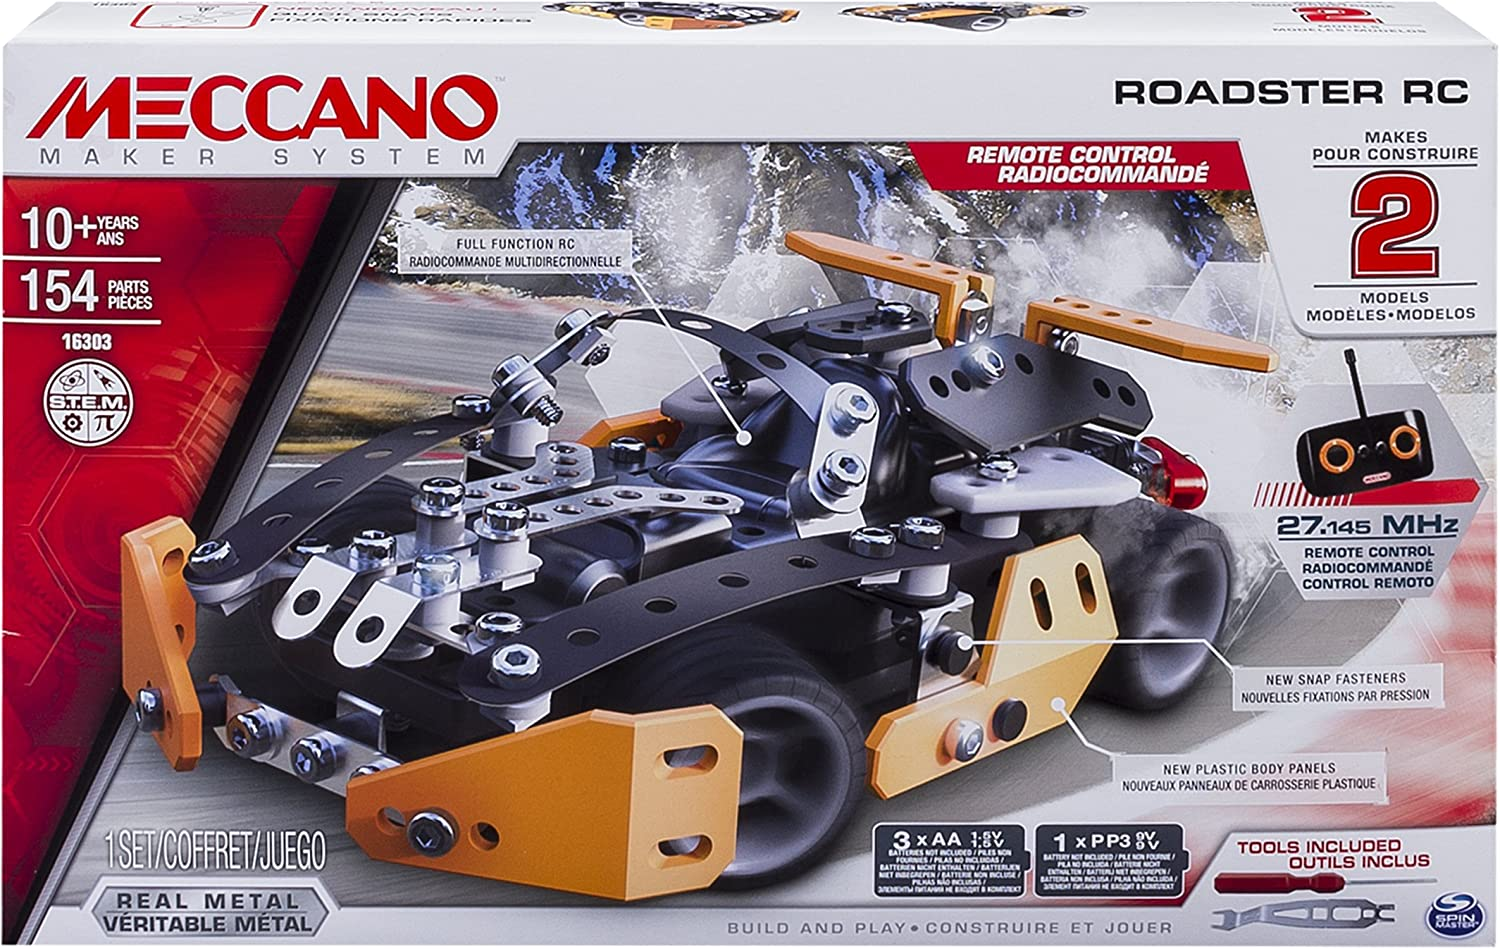 Meccano Erector Roadster RC Model Building Set, 154 Pieces, for Ages 10 and up, STEM Construction Education Toy